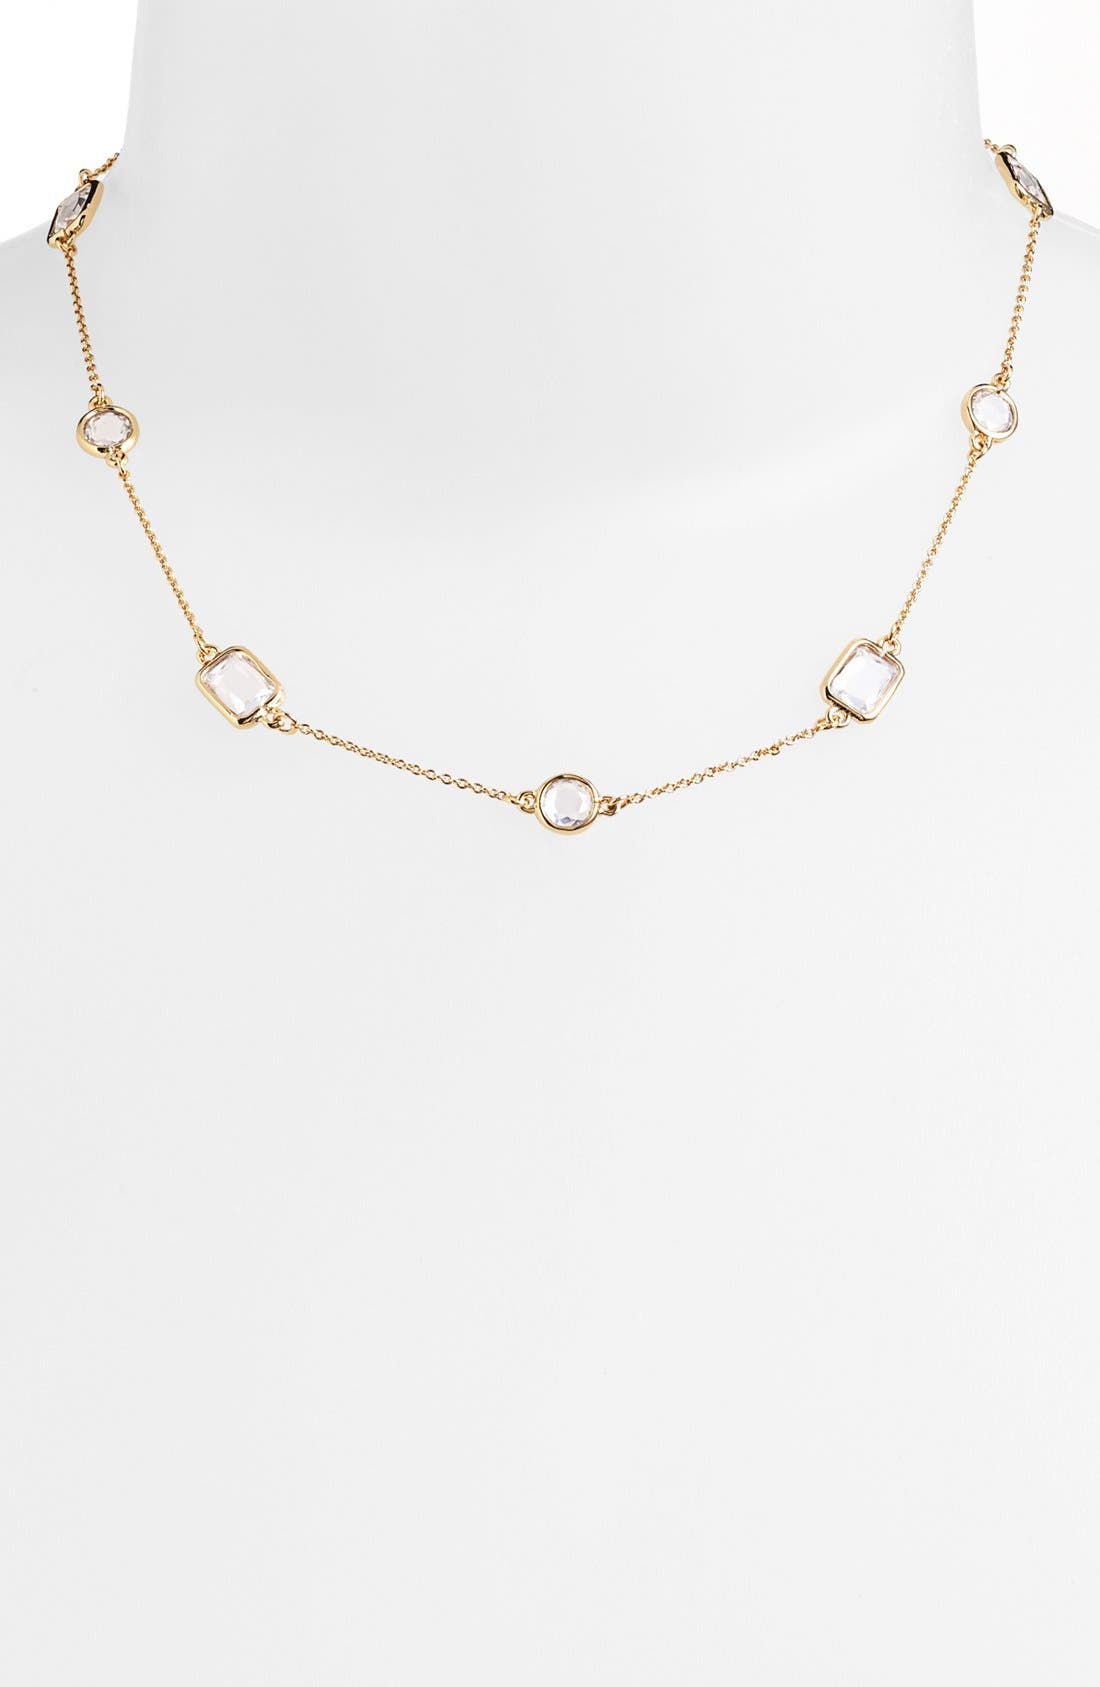 Main Image - kate spade new york 'opening night' station collar necklace